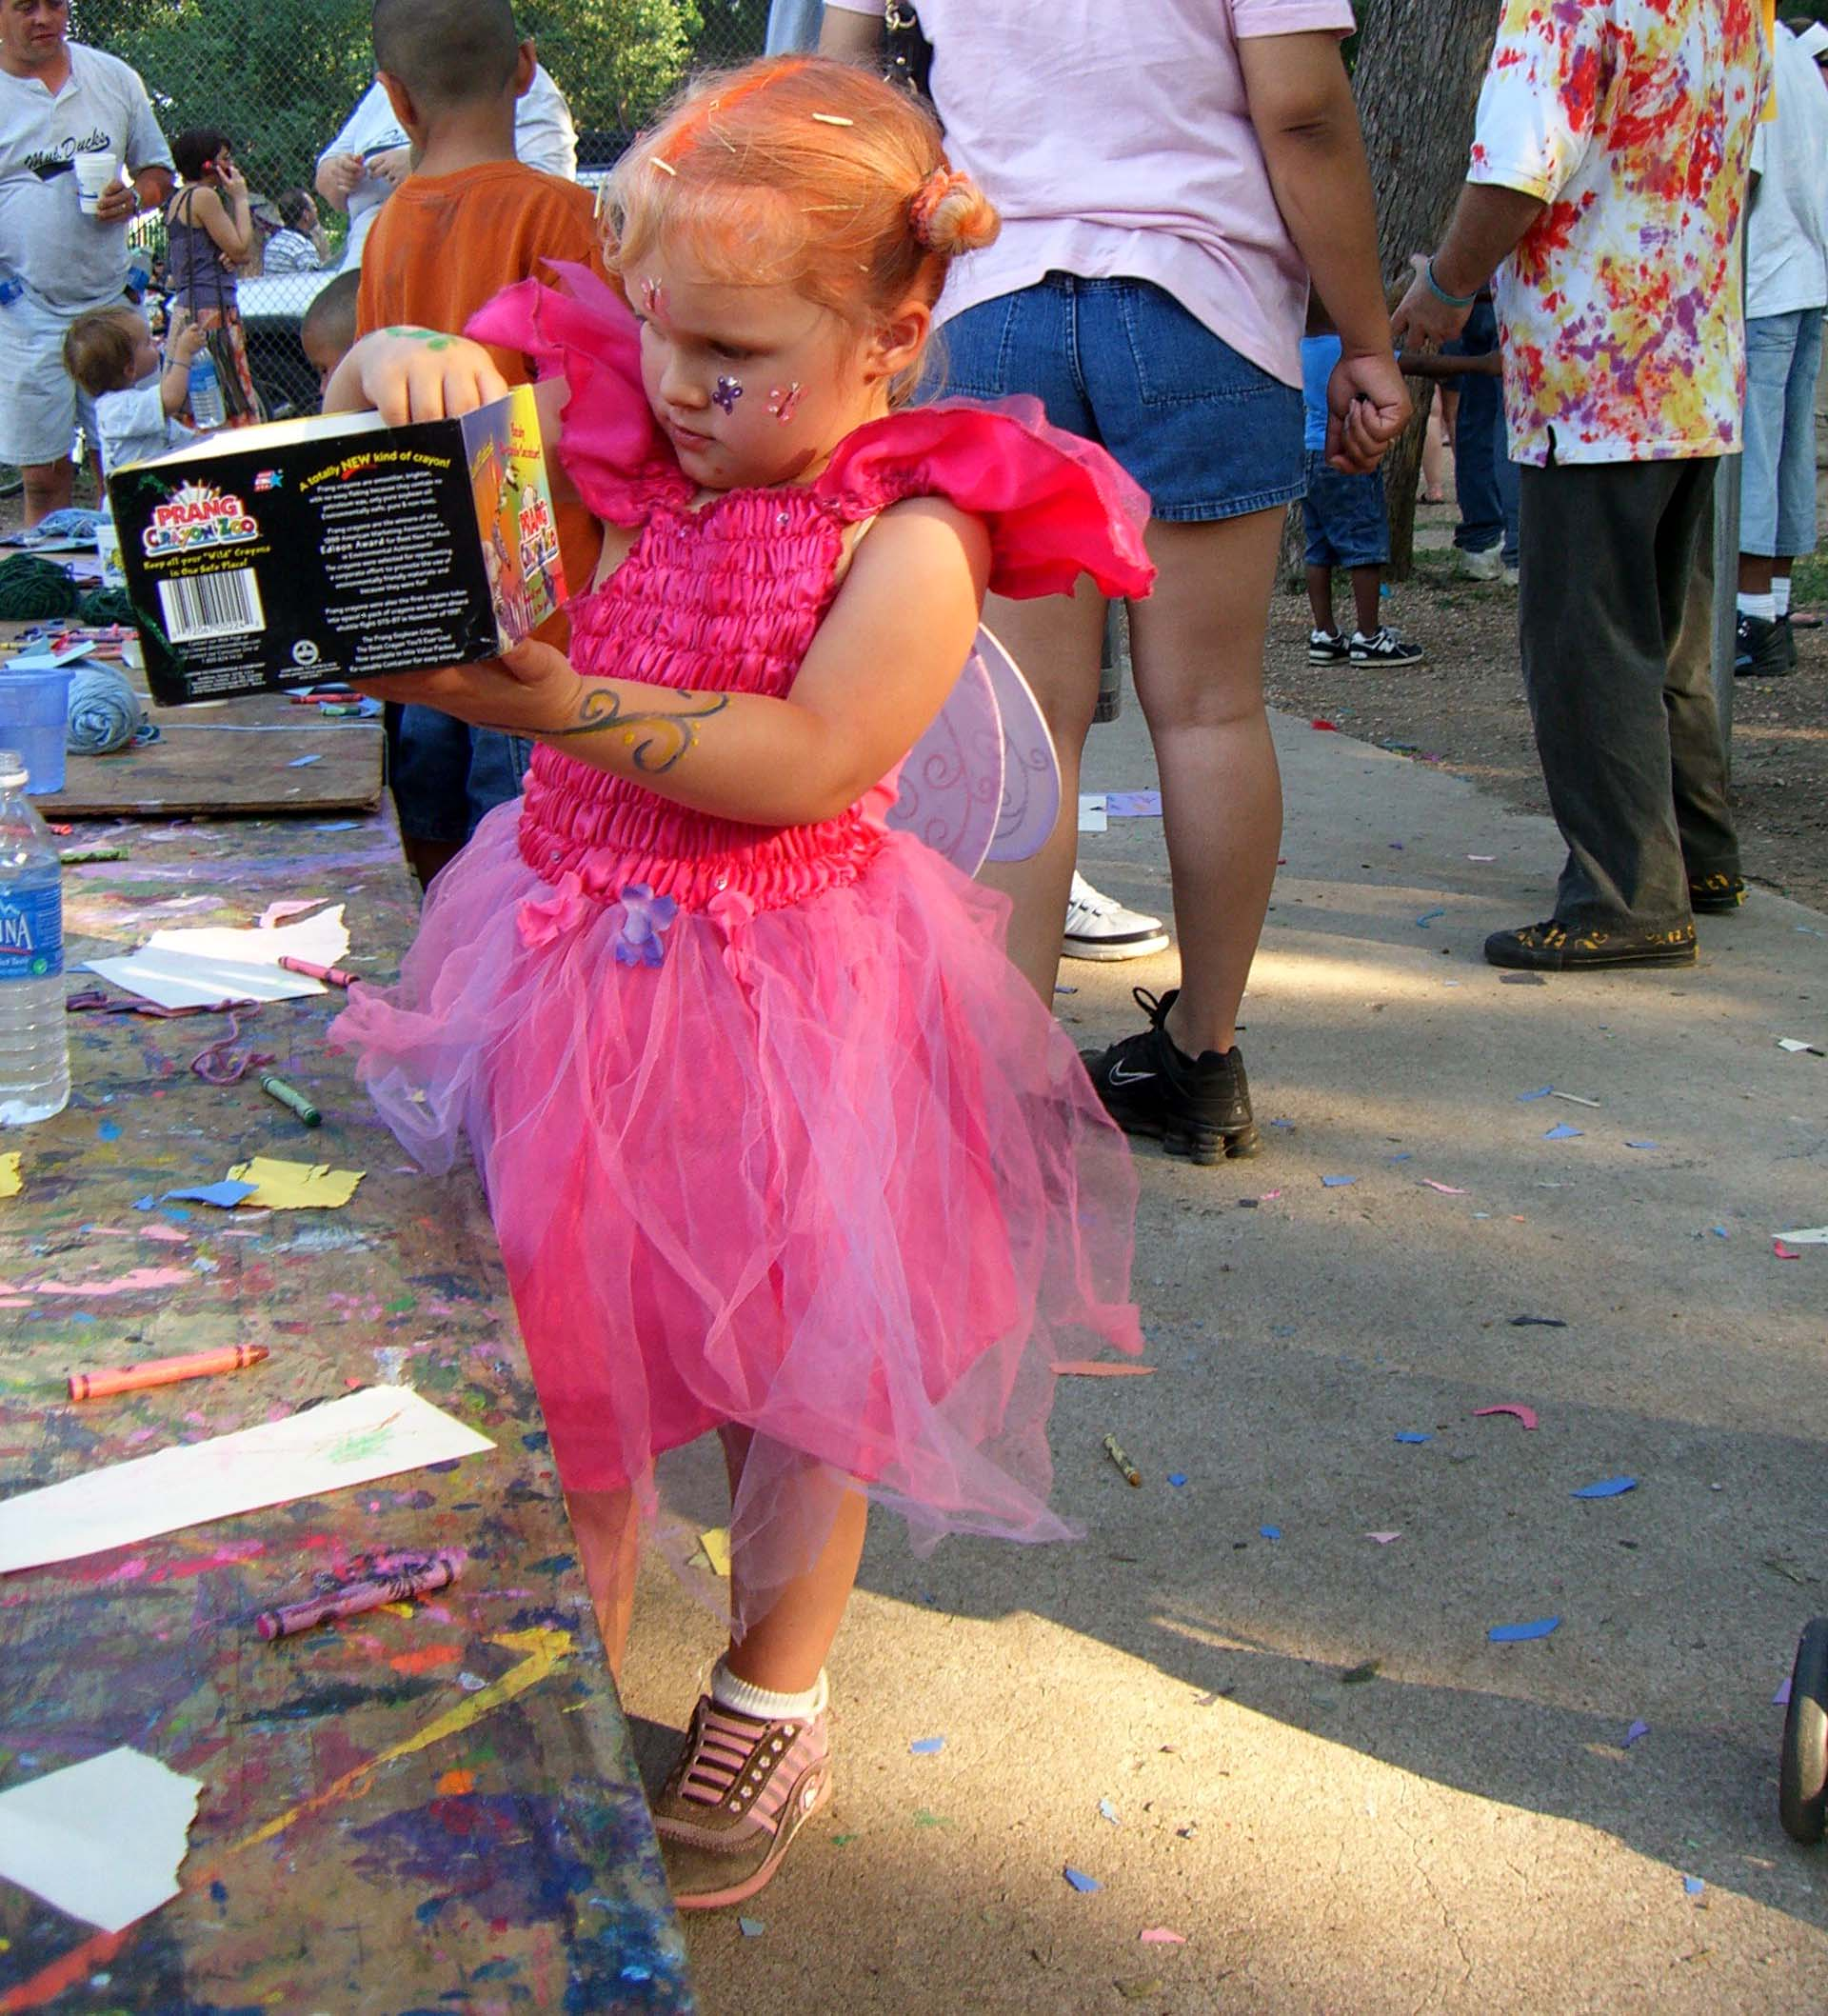 A fairy-in-training, with wings, seen at Eeyore's Birthday 2007